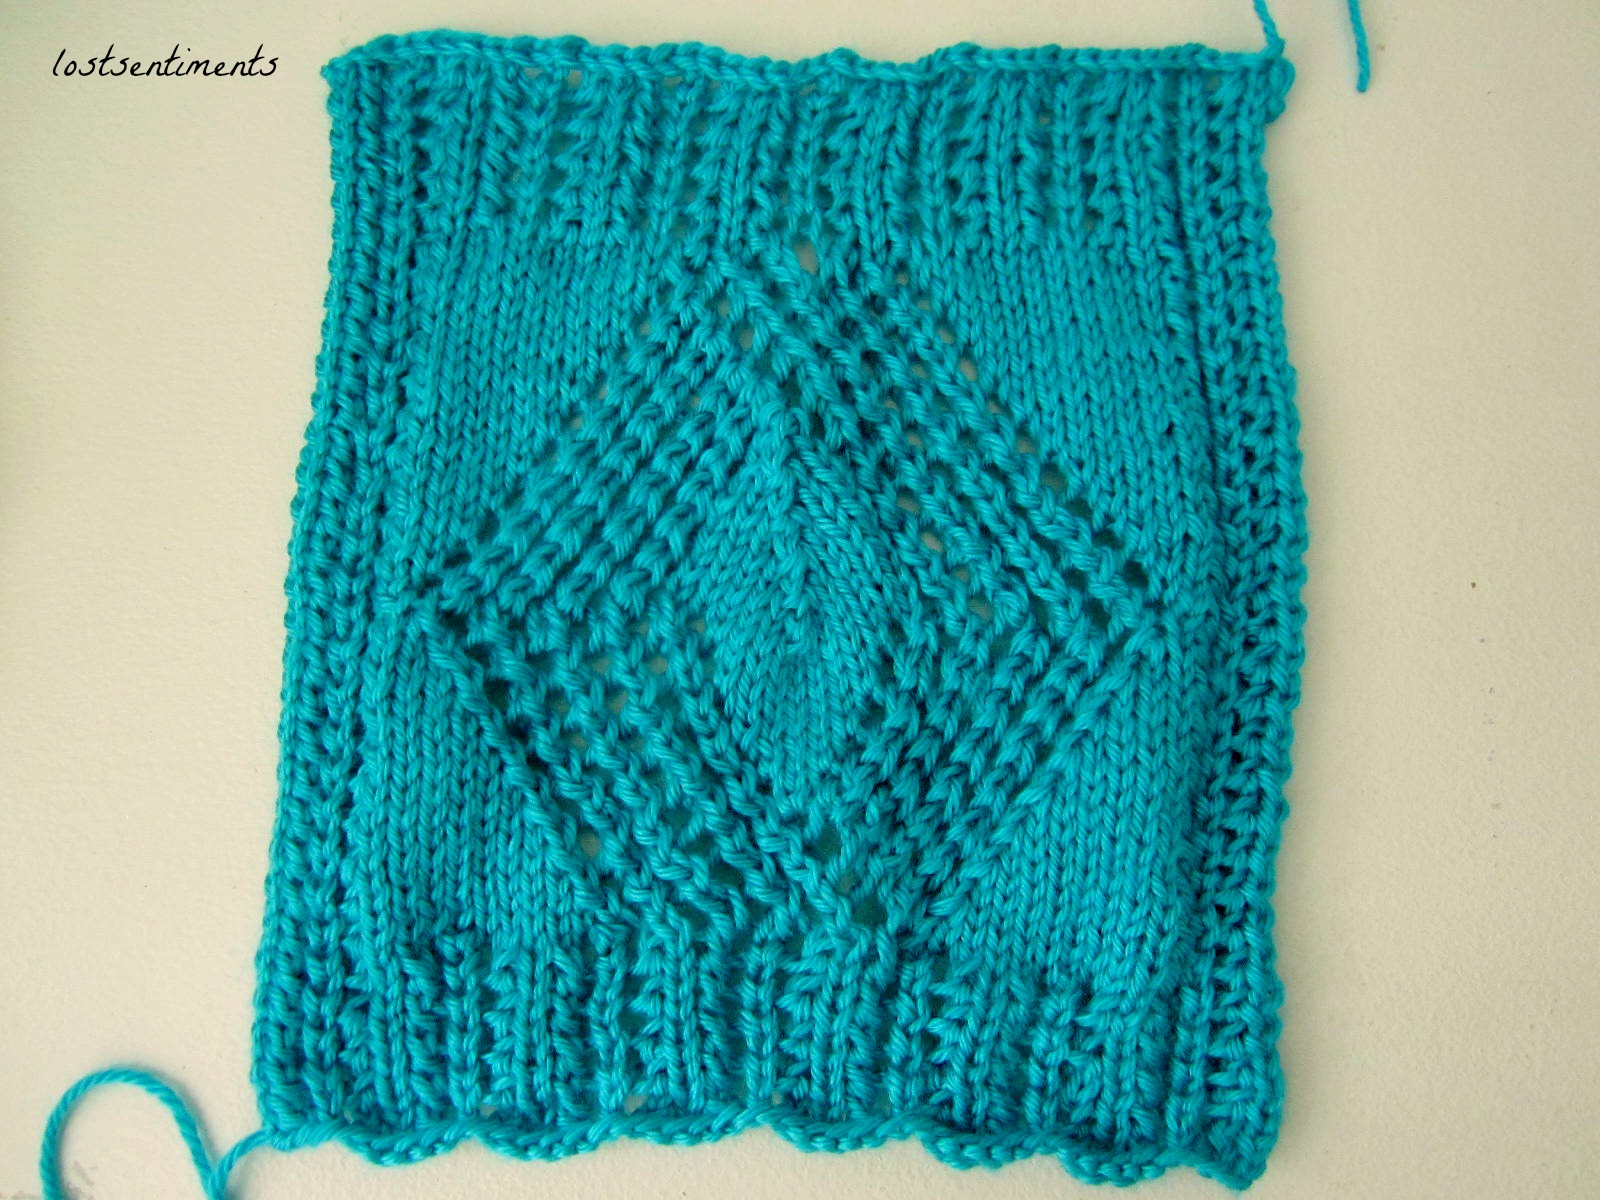 lostsentiments: Openwork Diamond Scarf - Free Knitting Pattern